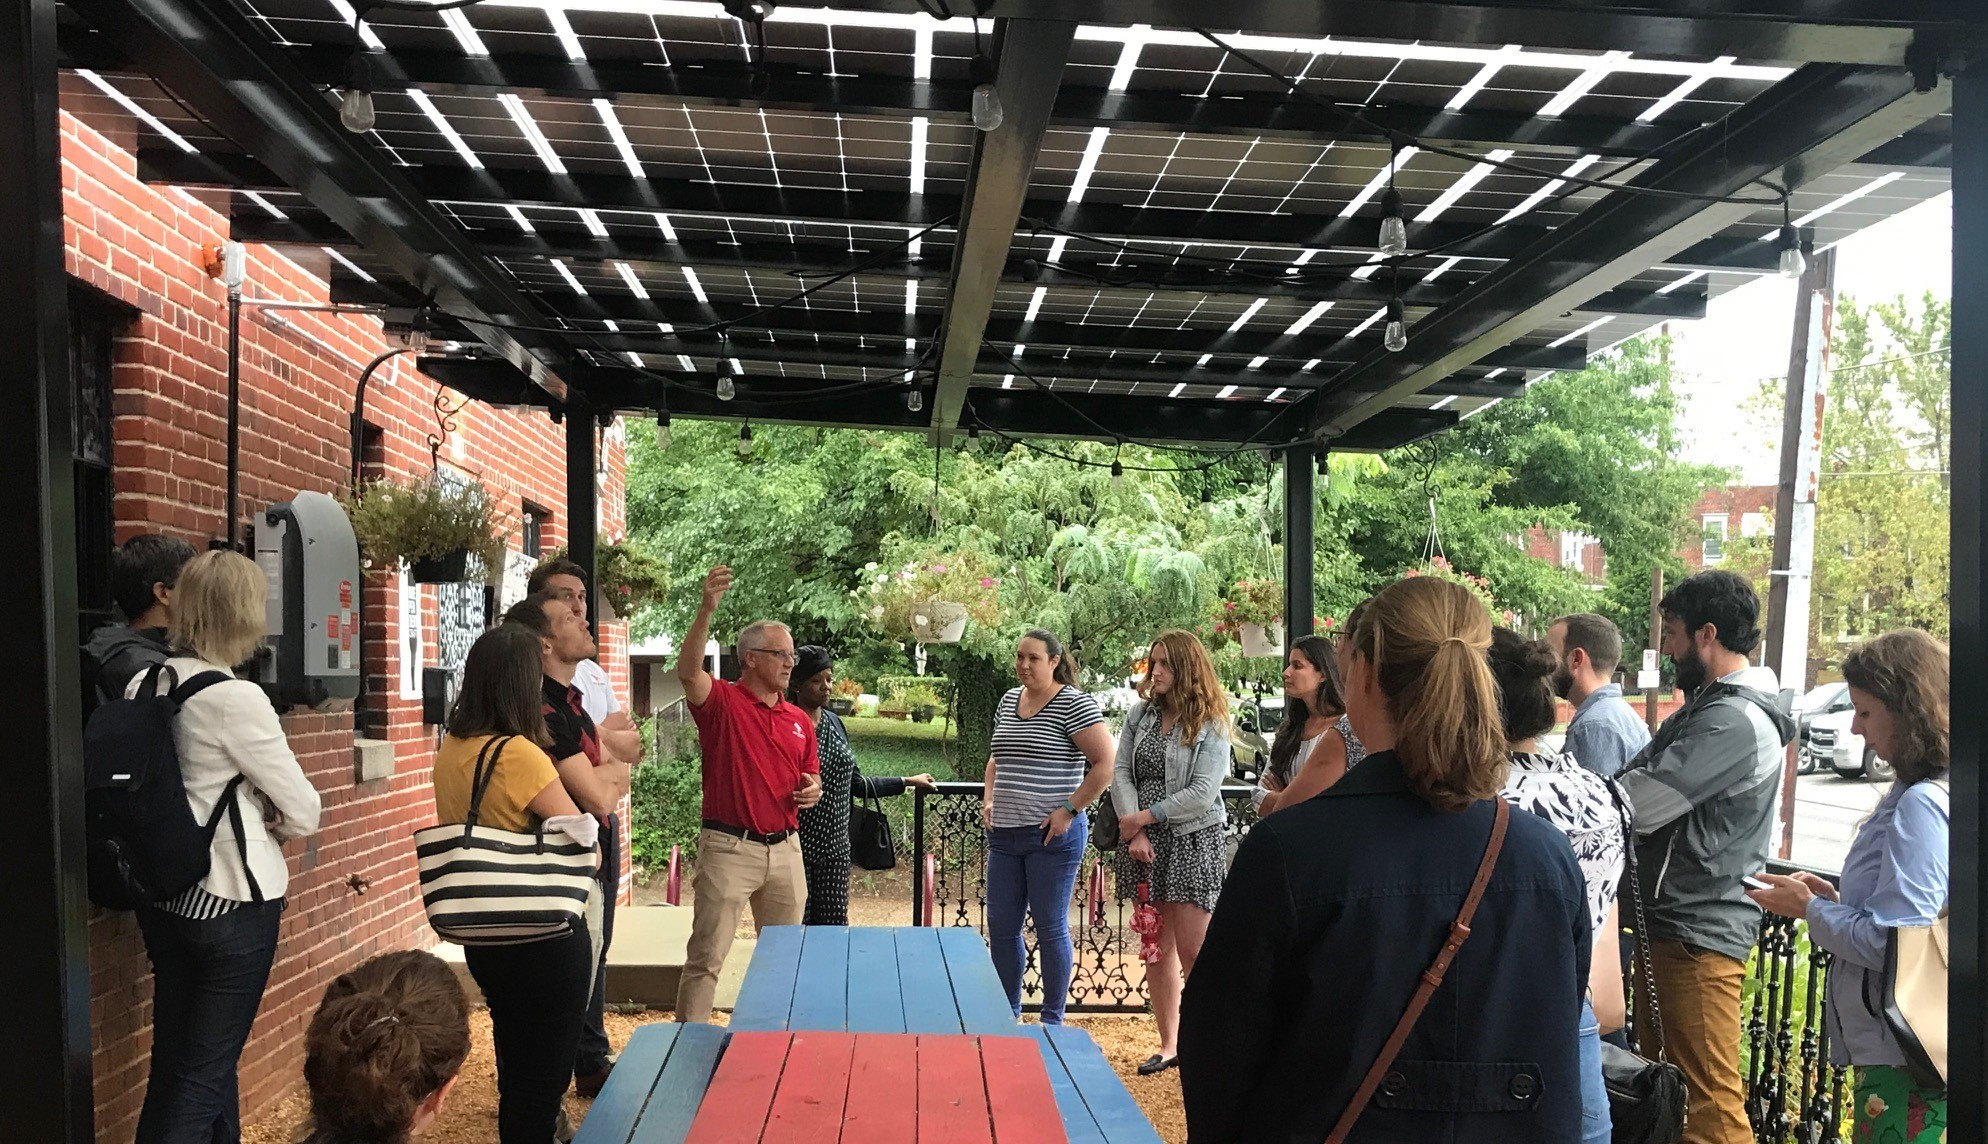 Attendees check out solar array at Right Proper Brewing Company